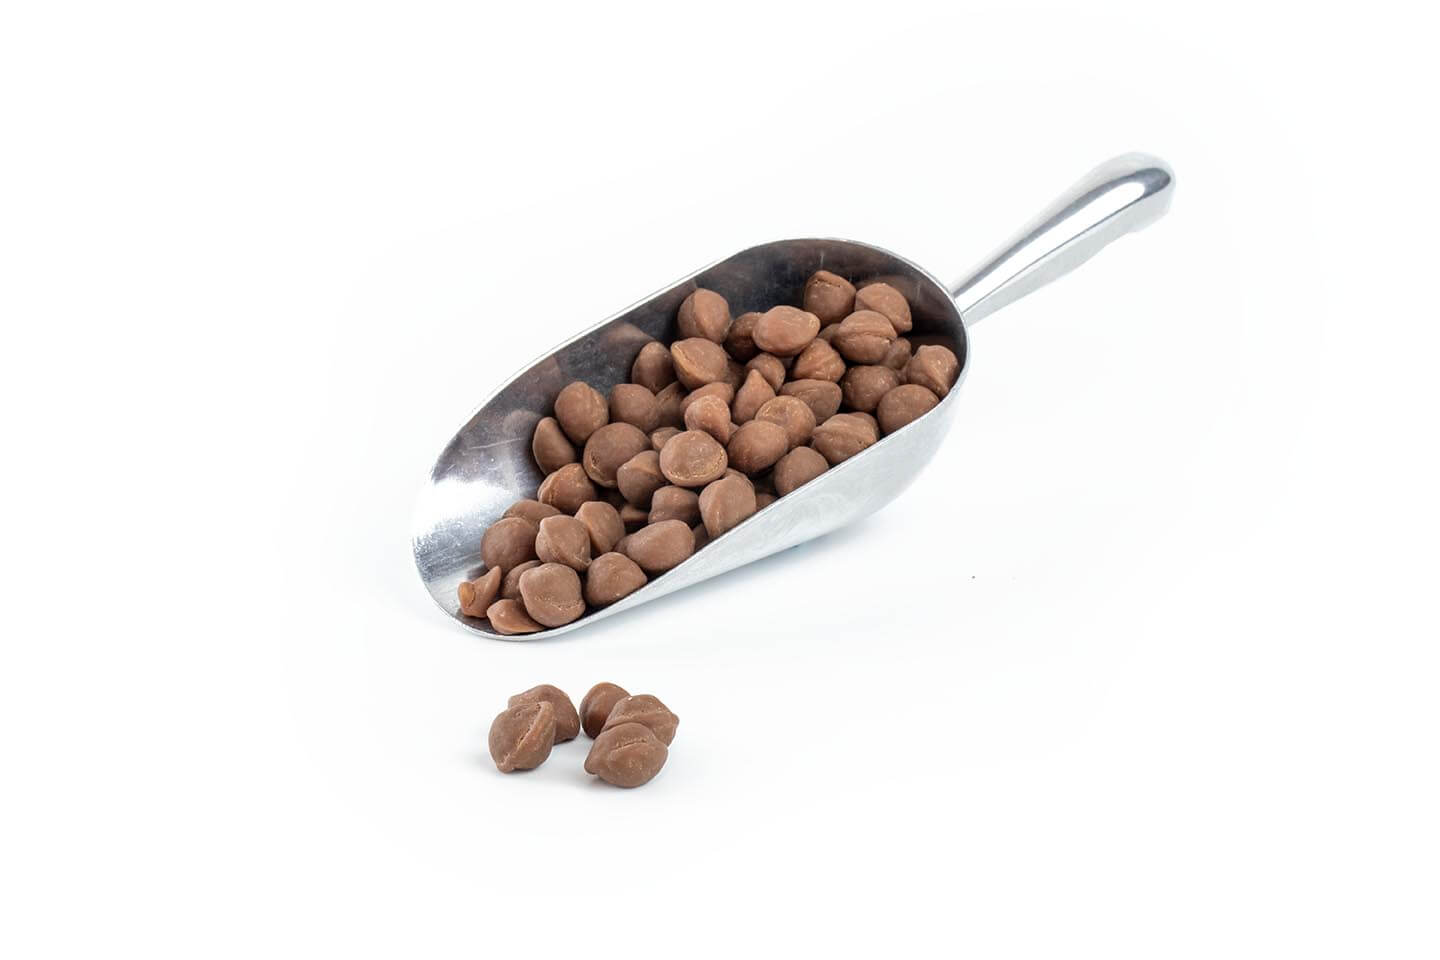 192204 - 10mm Fudge Balls Chocolate Coated in stainless steel scoop